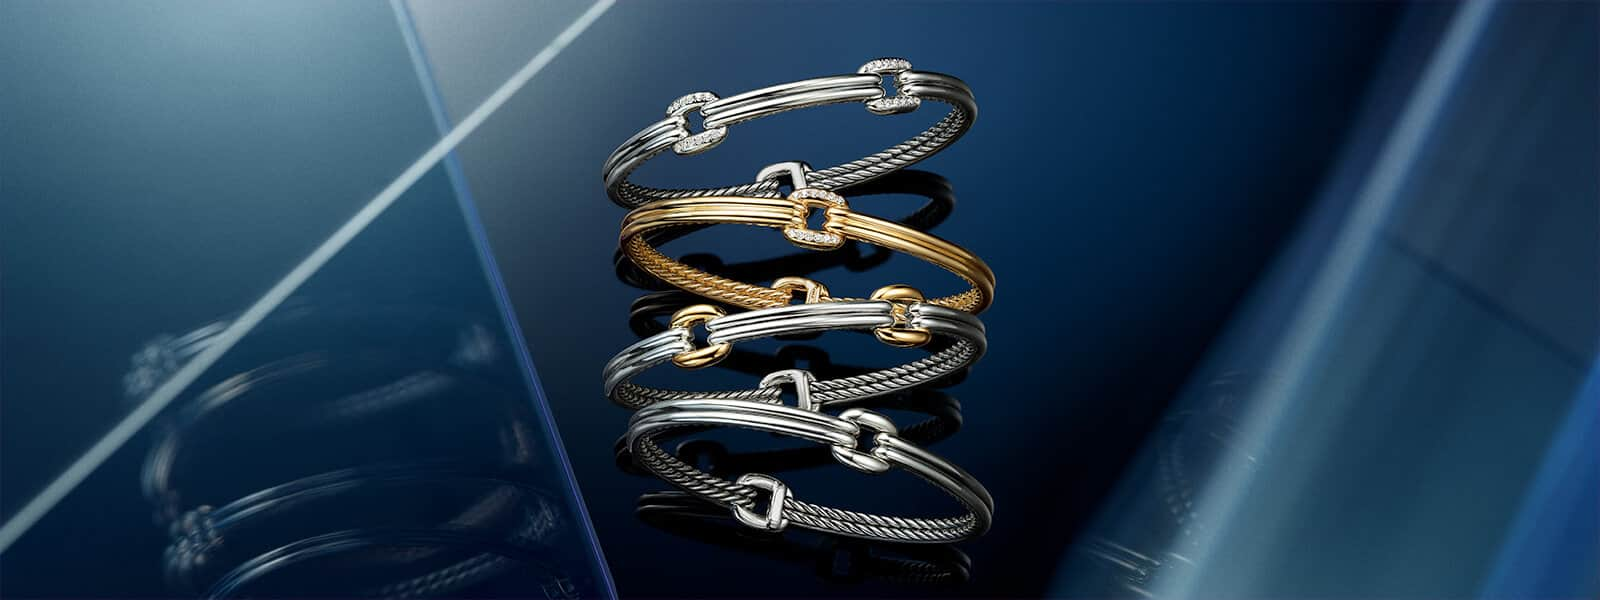 A color photograph shows four David Yurman bracelets from The Thoroughbred Collection arranged in a vertical stack atop a reflective surface with angular, multi-colored reflections of light and jewelry. From top, the bracelets are crafted from sterling silver with pavé white diamonds; 18K yellow gold with pavé white diamonds; sterling silver with 18K yellow gold accents; and sterling silver.